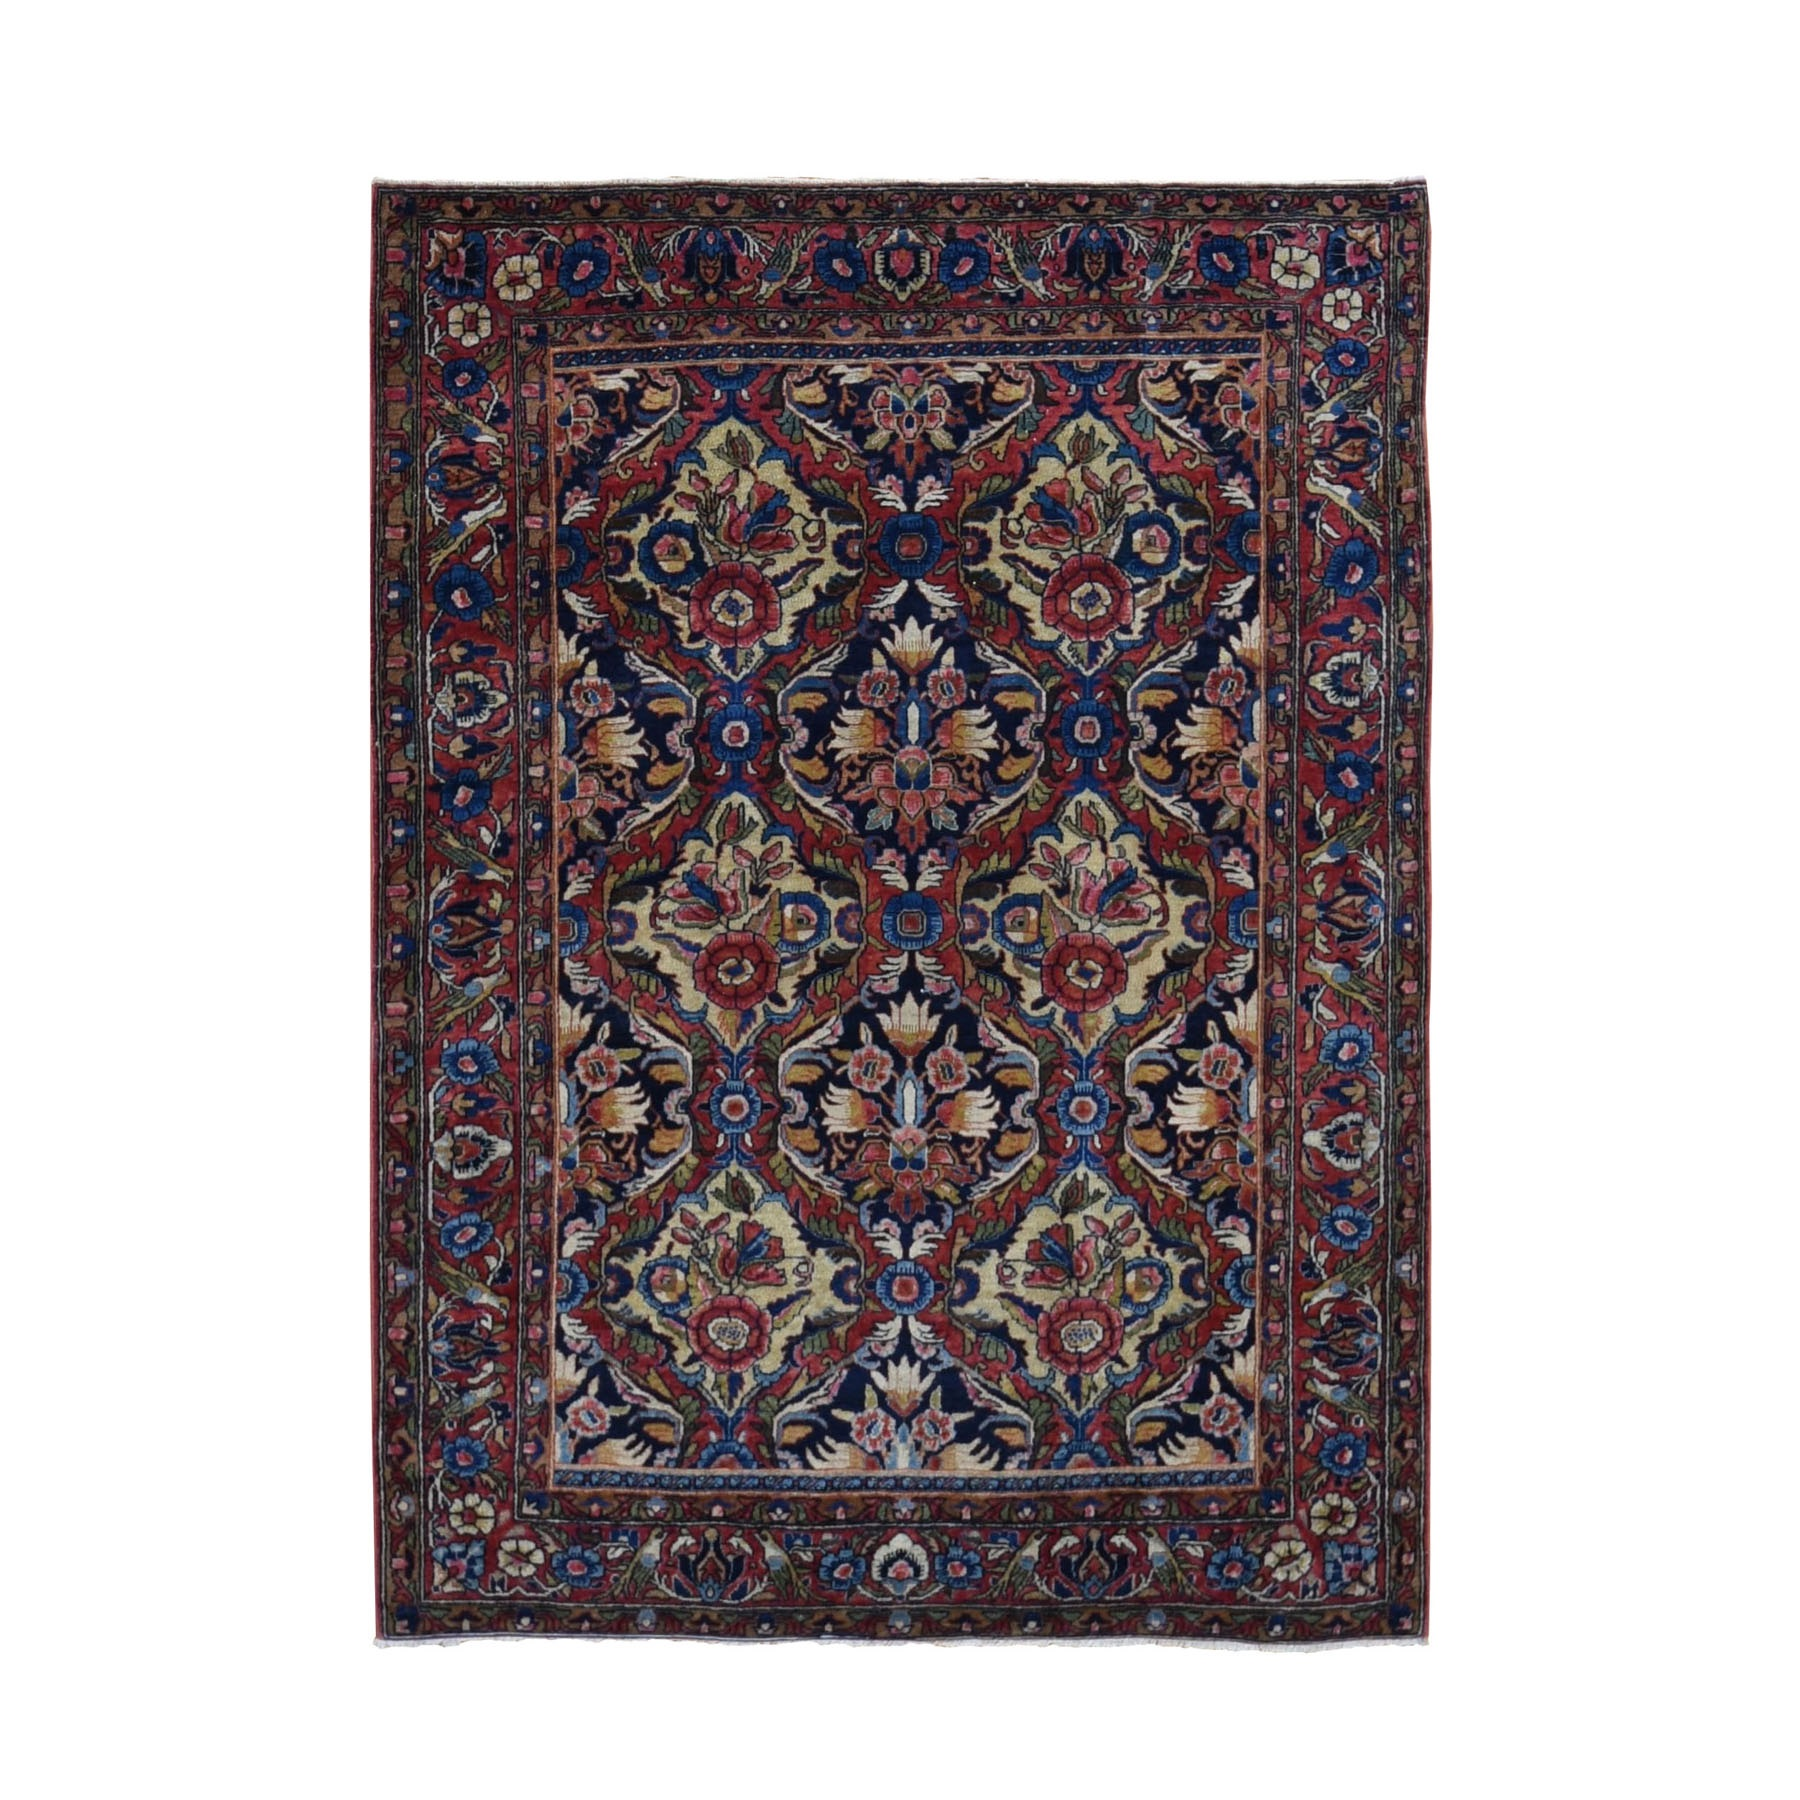 "3'4""x4'10"" Red Antique Persian Sarouk Exc Condition Soft Full Pile Hand Woven Oriental Rug"